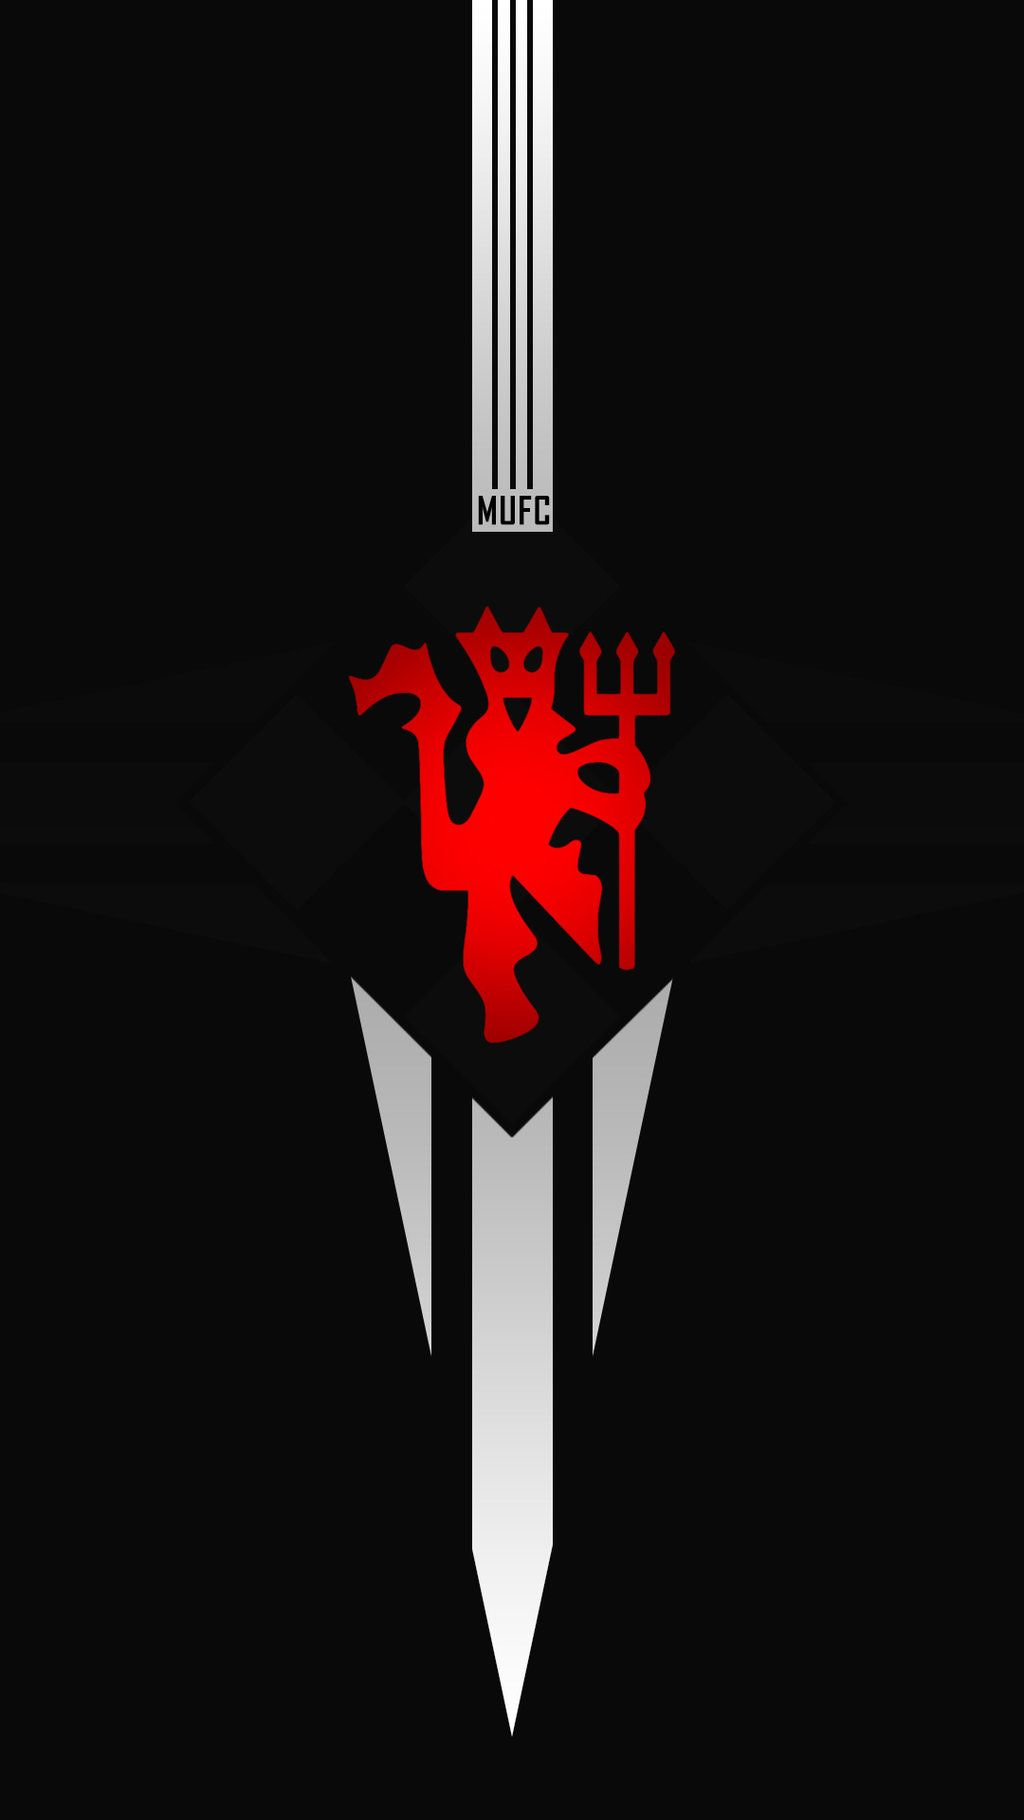 Manchester United Hd Wallpapers Manchester United Hd Manchester United Wallpaper Manchester United Logo Manchester United Art